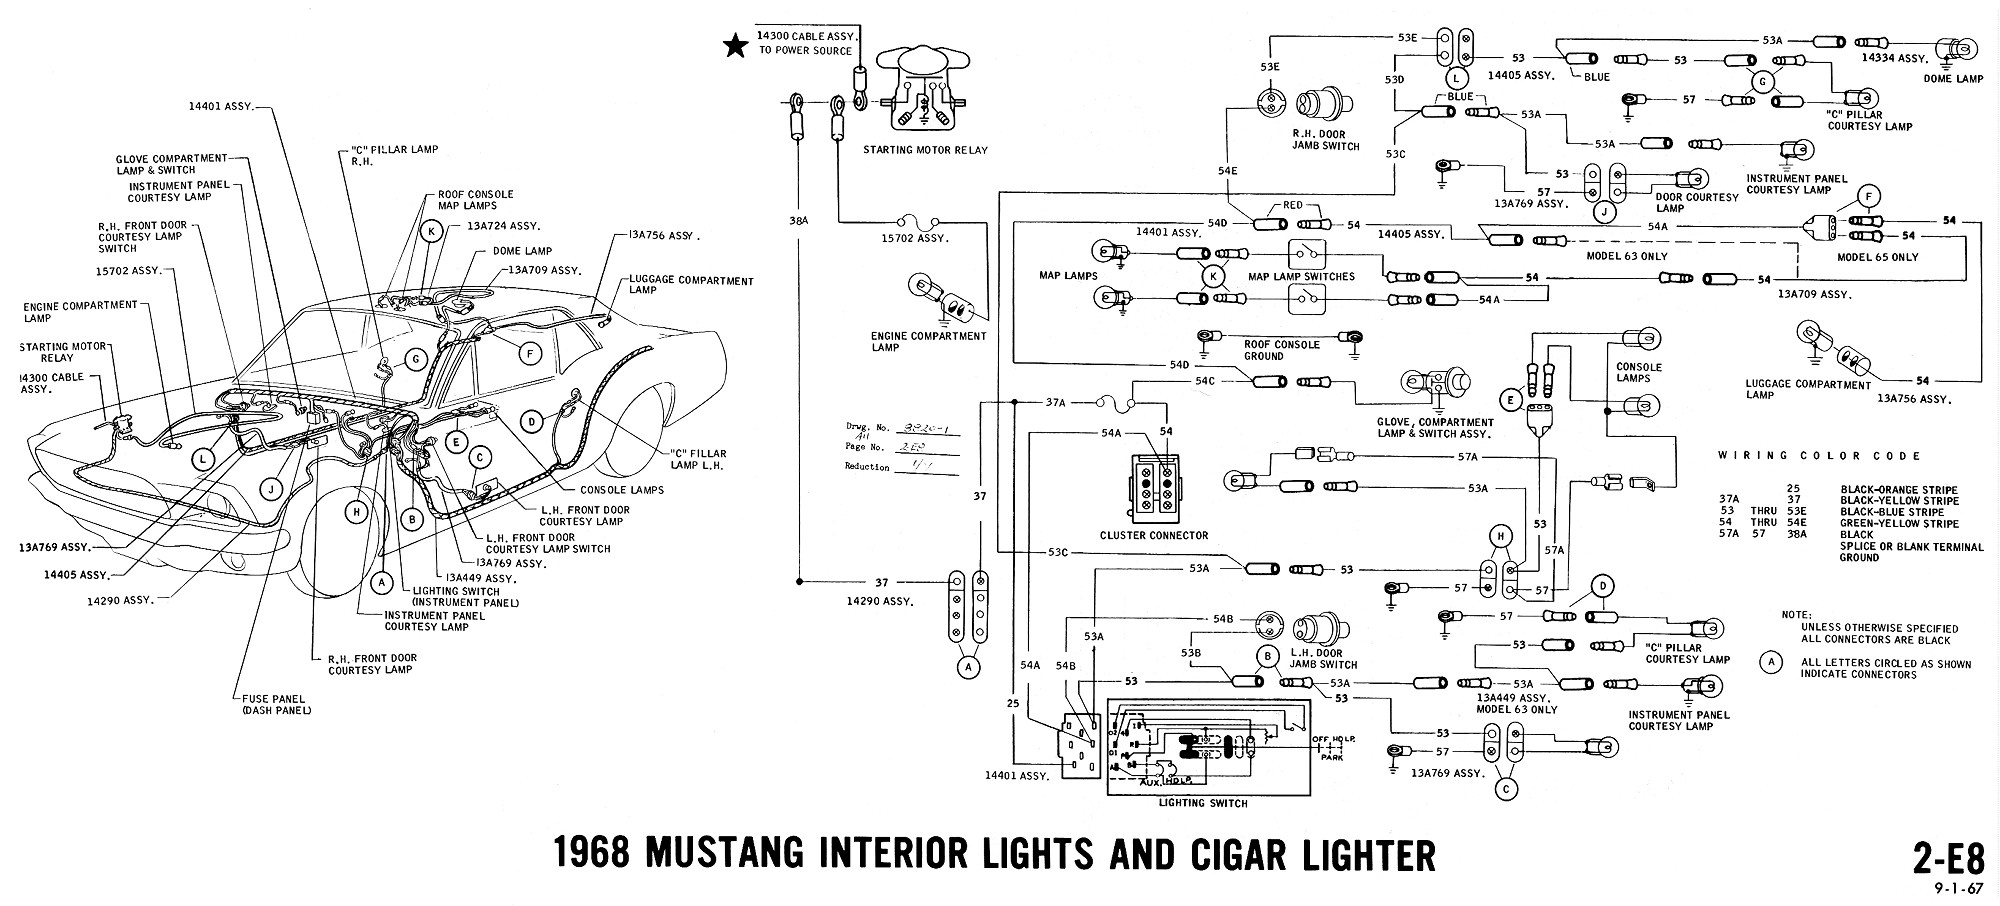 1968 mustang wiring diagram interior lights cigar lighter 1968 mustang wiring diagrams and vacuum schematics average joe 1966 mustang wiring diagrams at n-0.co